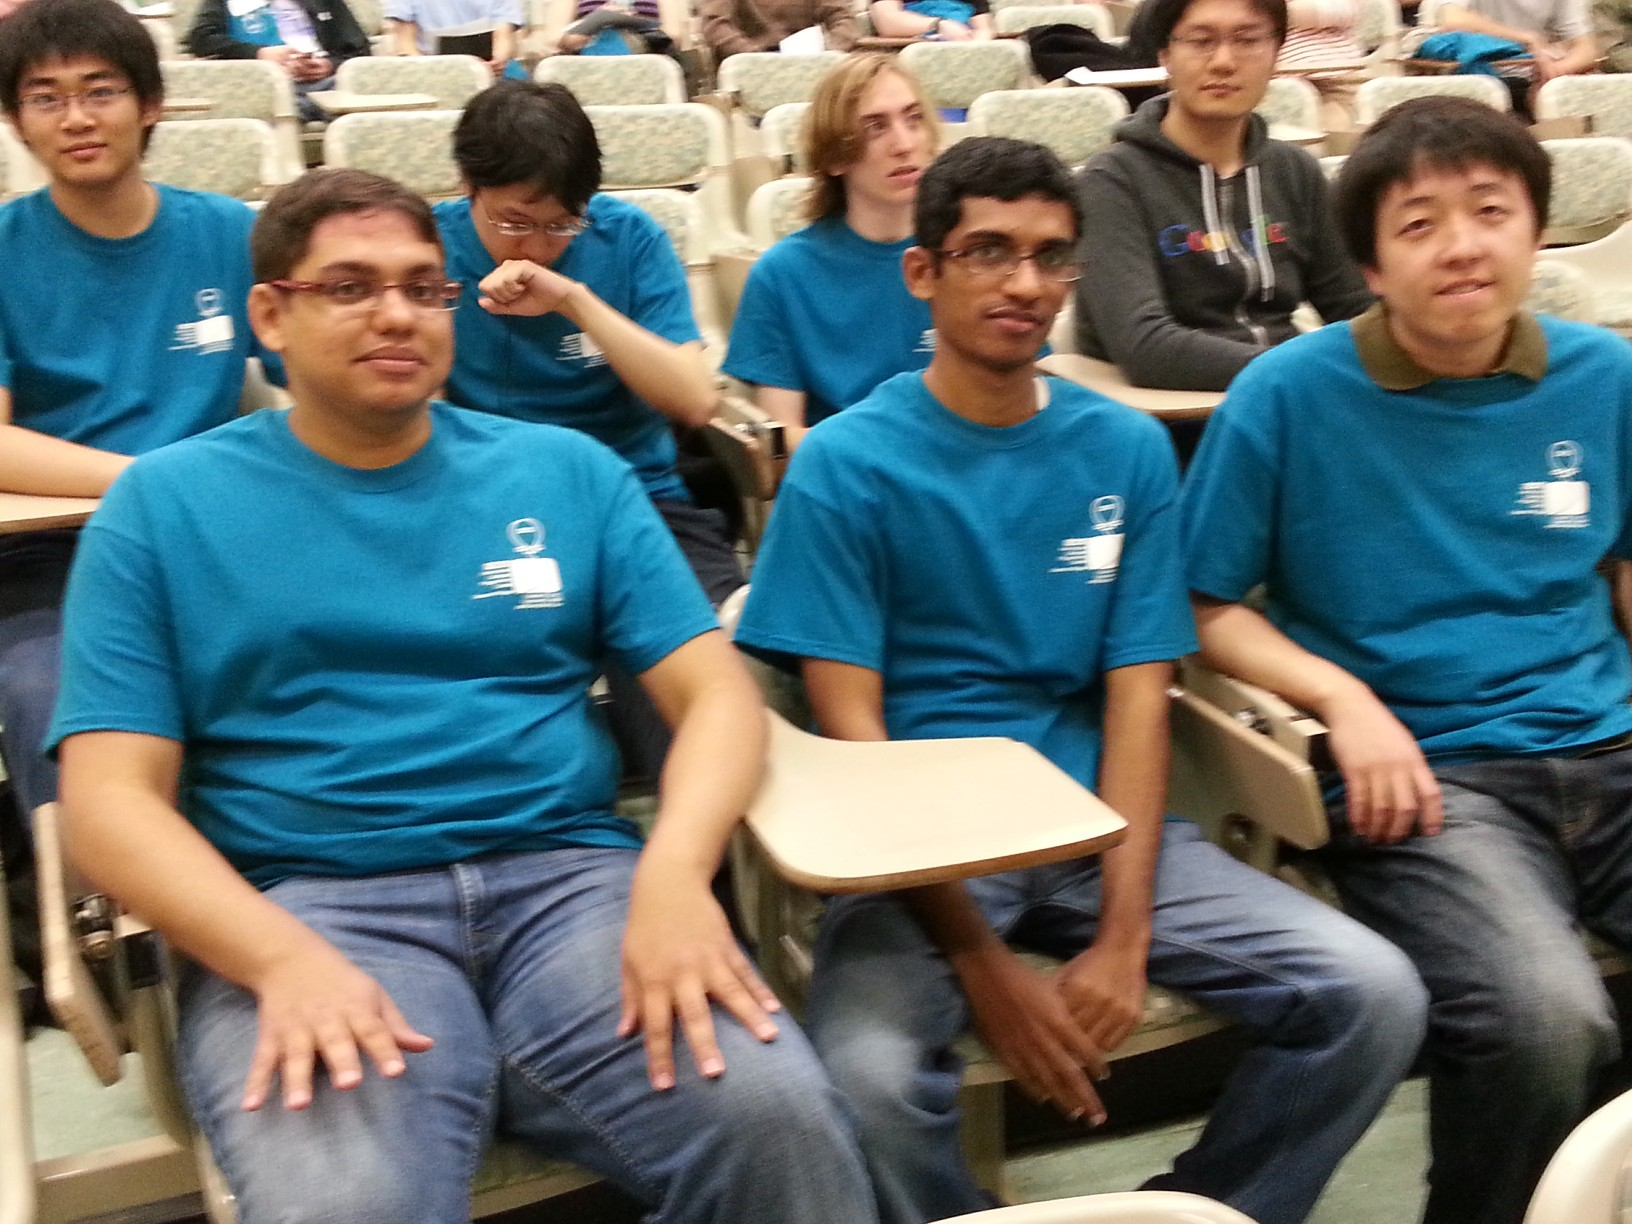 ... Cooking Fuels Stony Brook to Second Place in ACM Programming Contest